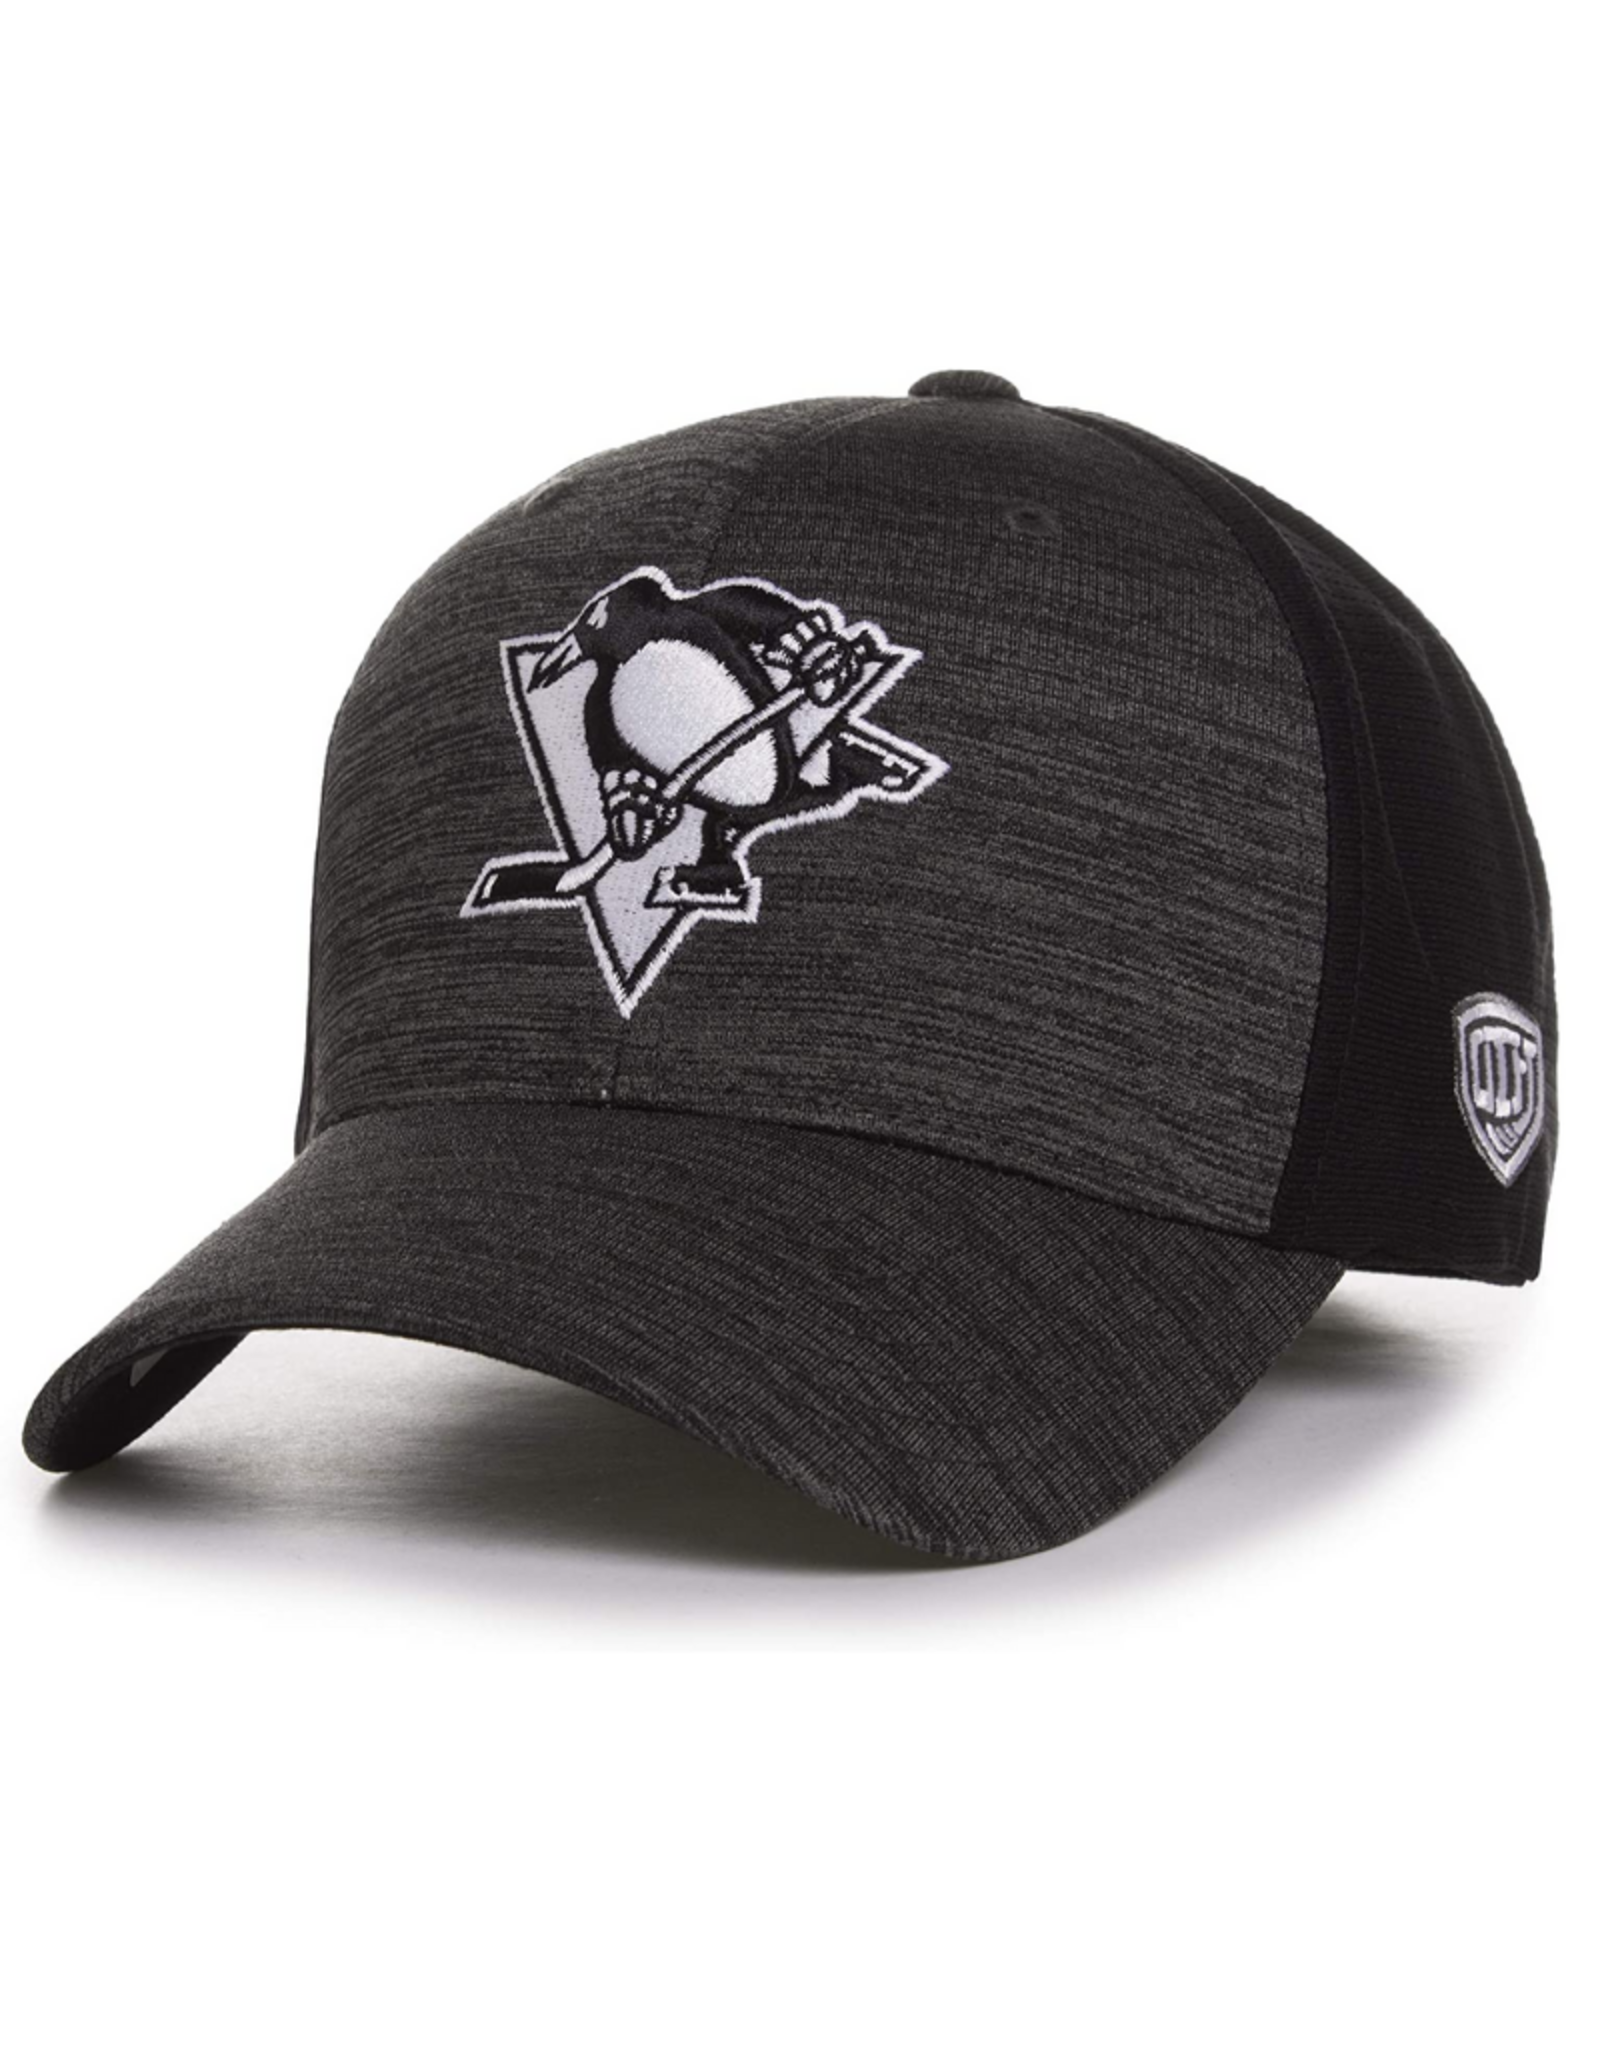 OTH Men's Ice Chip Stretch-Fit Hat OS Pittsburgh Penguins Carbon